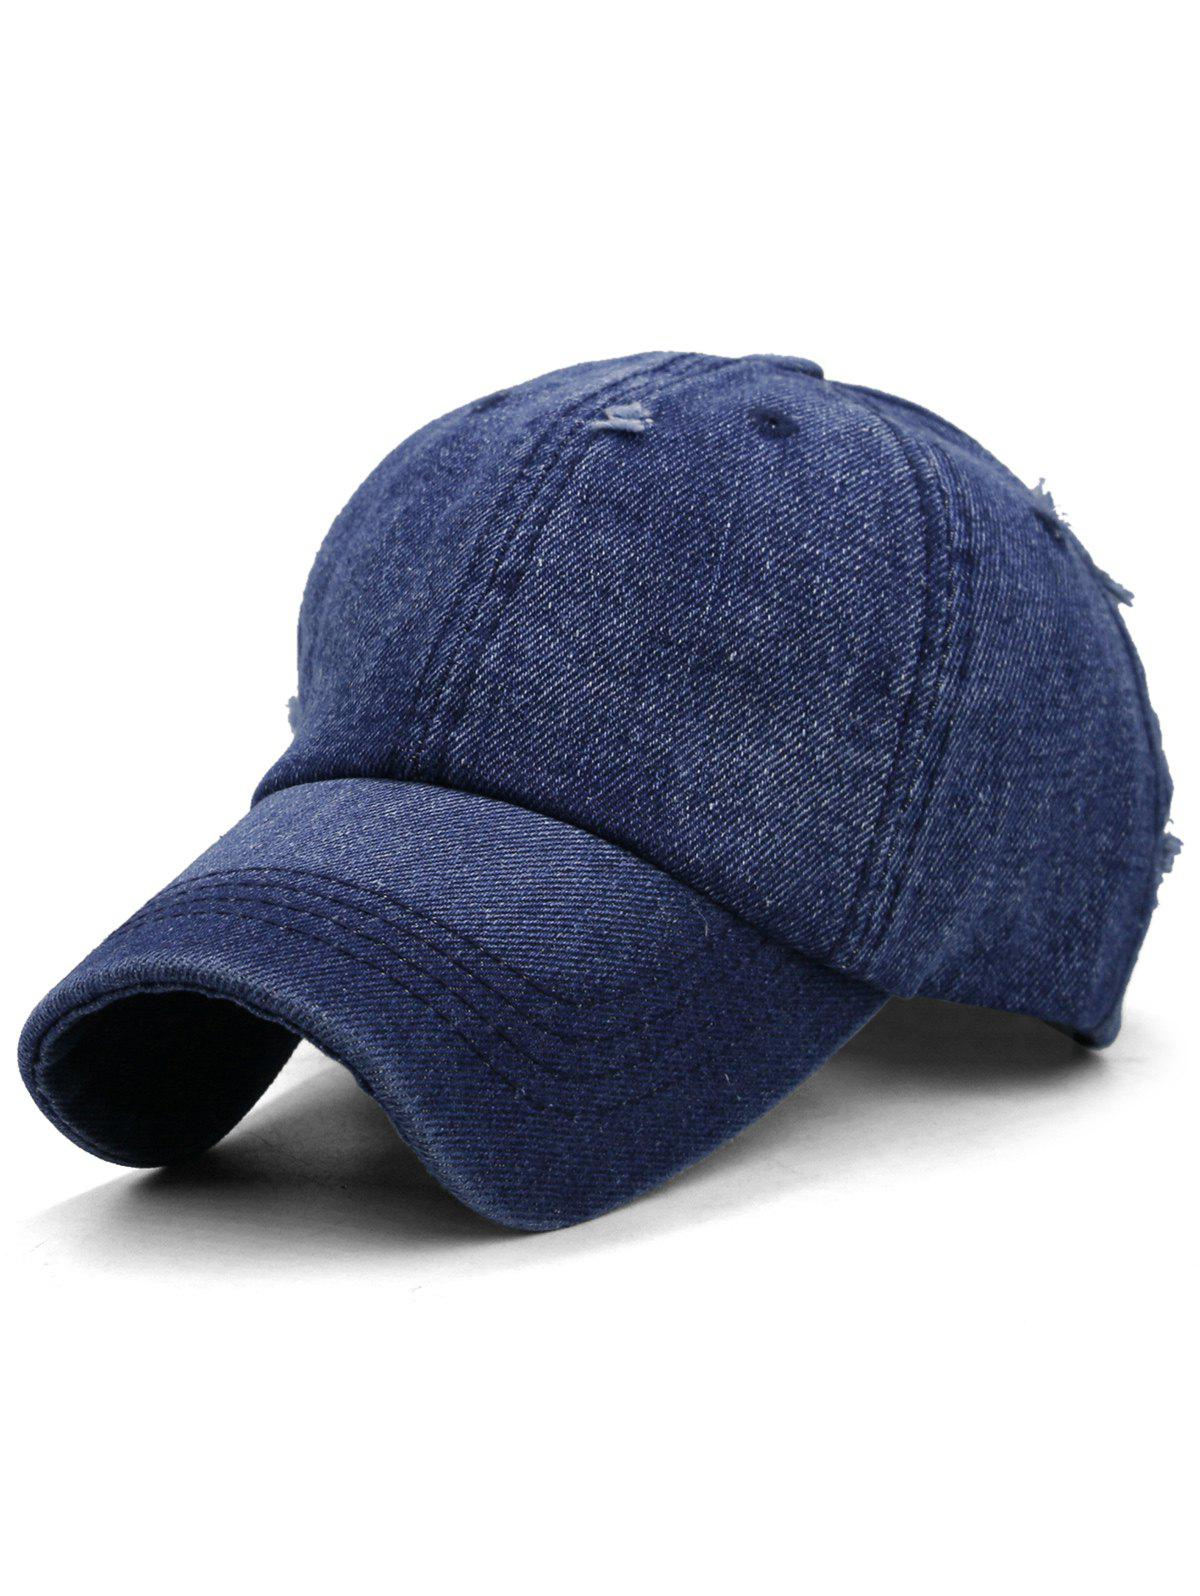 Buy Outdoor Solid Color Washed Dyed Denim Baseball Hat